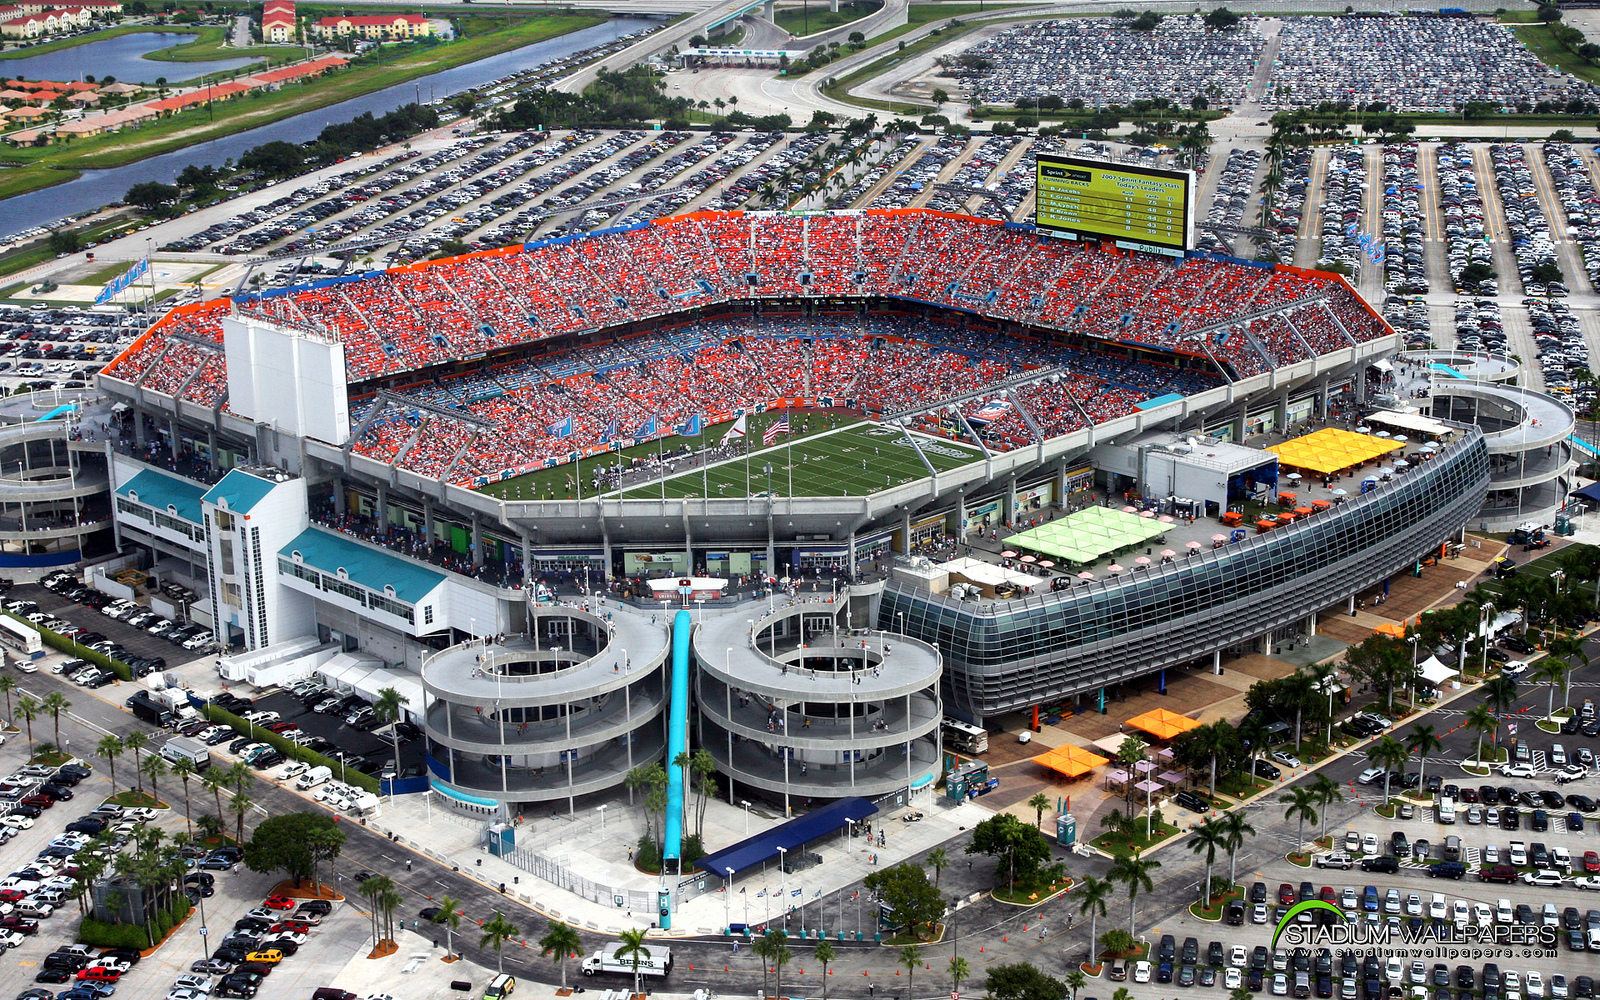 hard rock stadium, miami dolphins football stadium